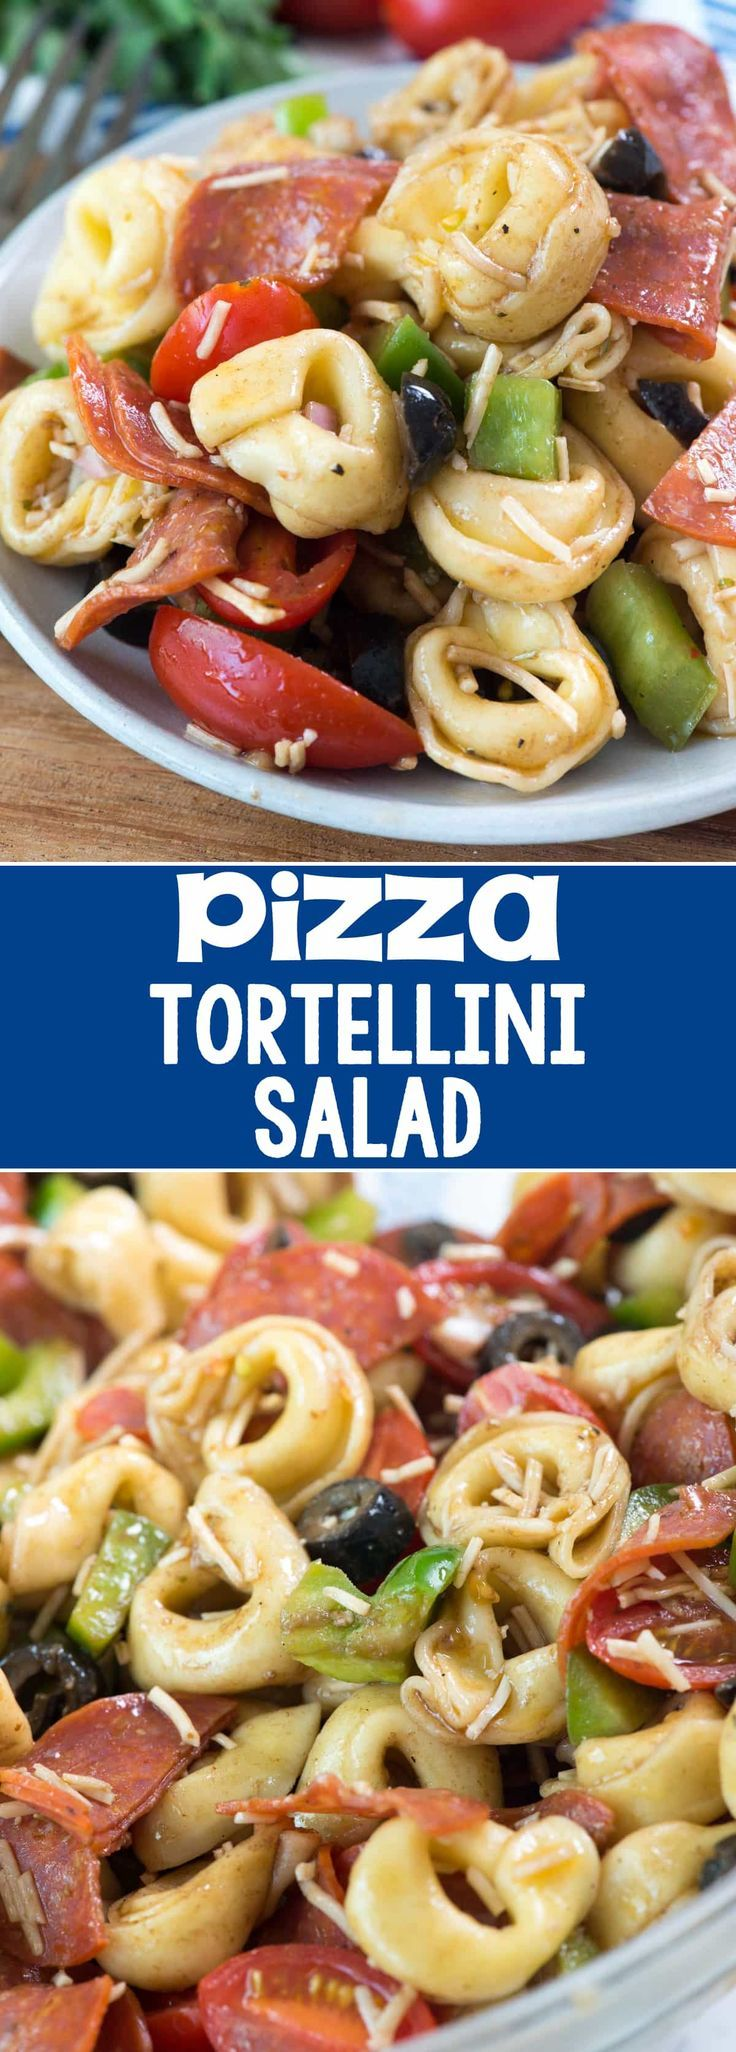 Pizza Tortellini Salad - this easy pasta salad recipe is full of pizza flavor with cheese tortellini, pepperoni, bell peppers, olives, tomatoes and a homemade balsamic dressing! It's perfect for a summer potluck!